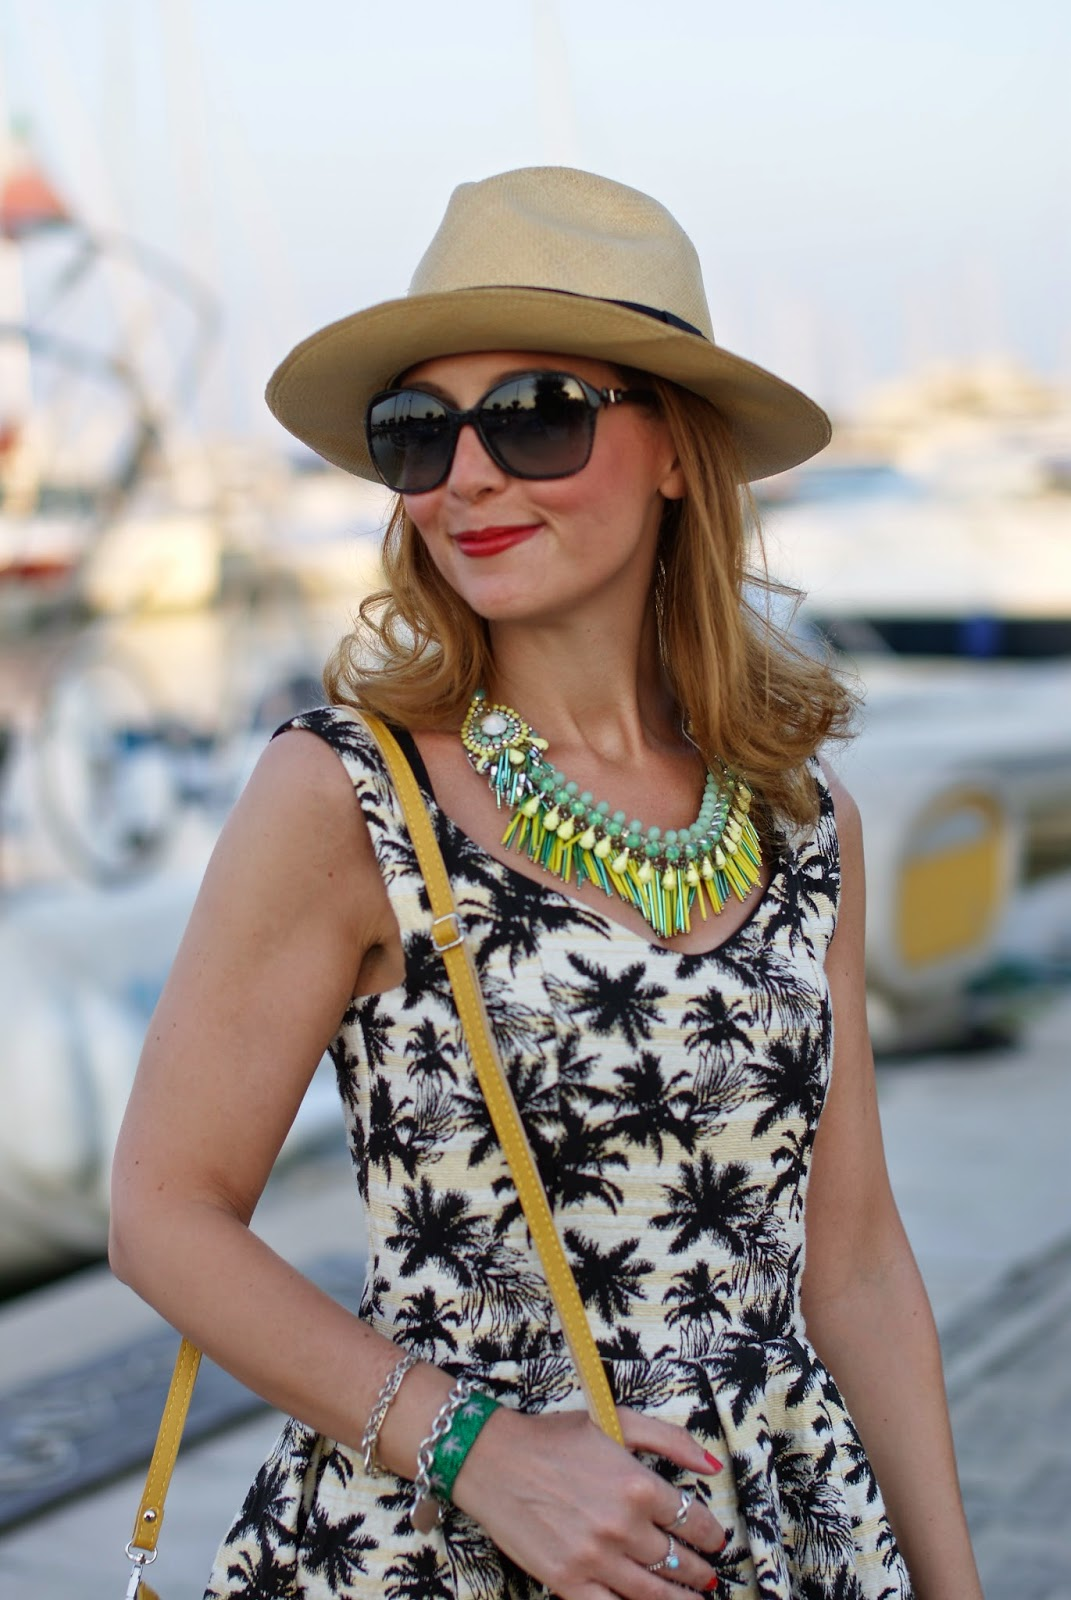 Dixie abito palme, Sodini necklace, collana gialla sodini, ecua-andino beige hat, Fashion and Cookies, fashion blogger